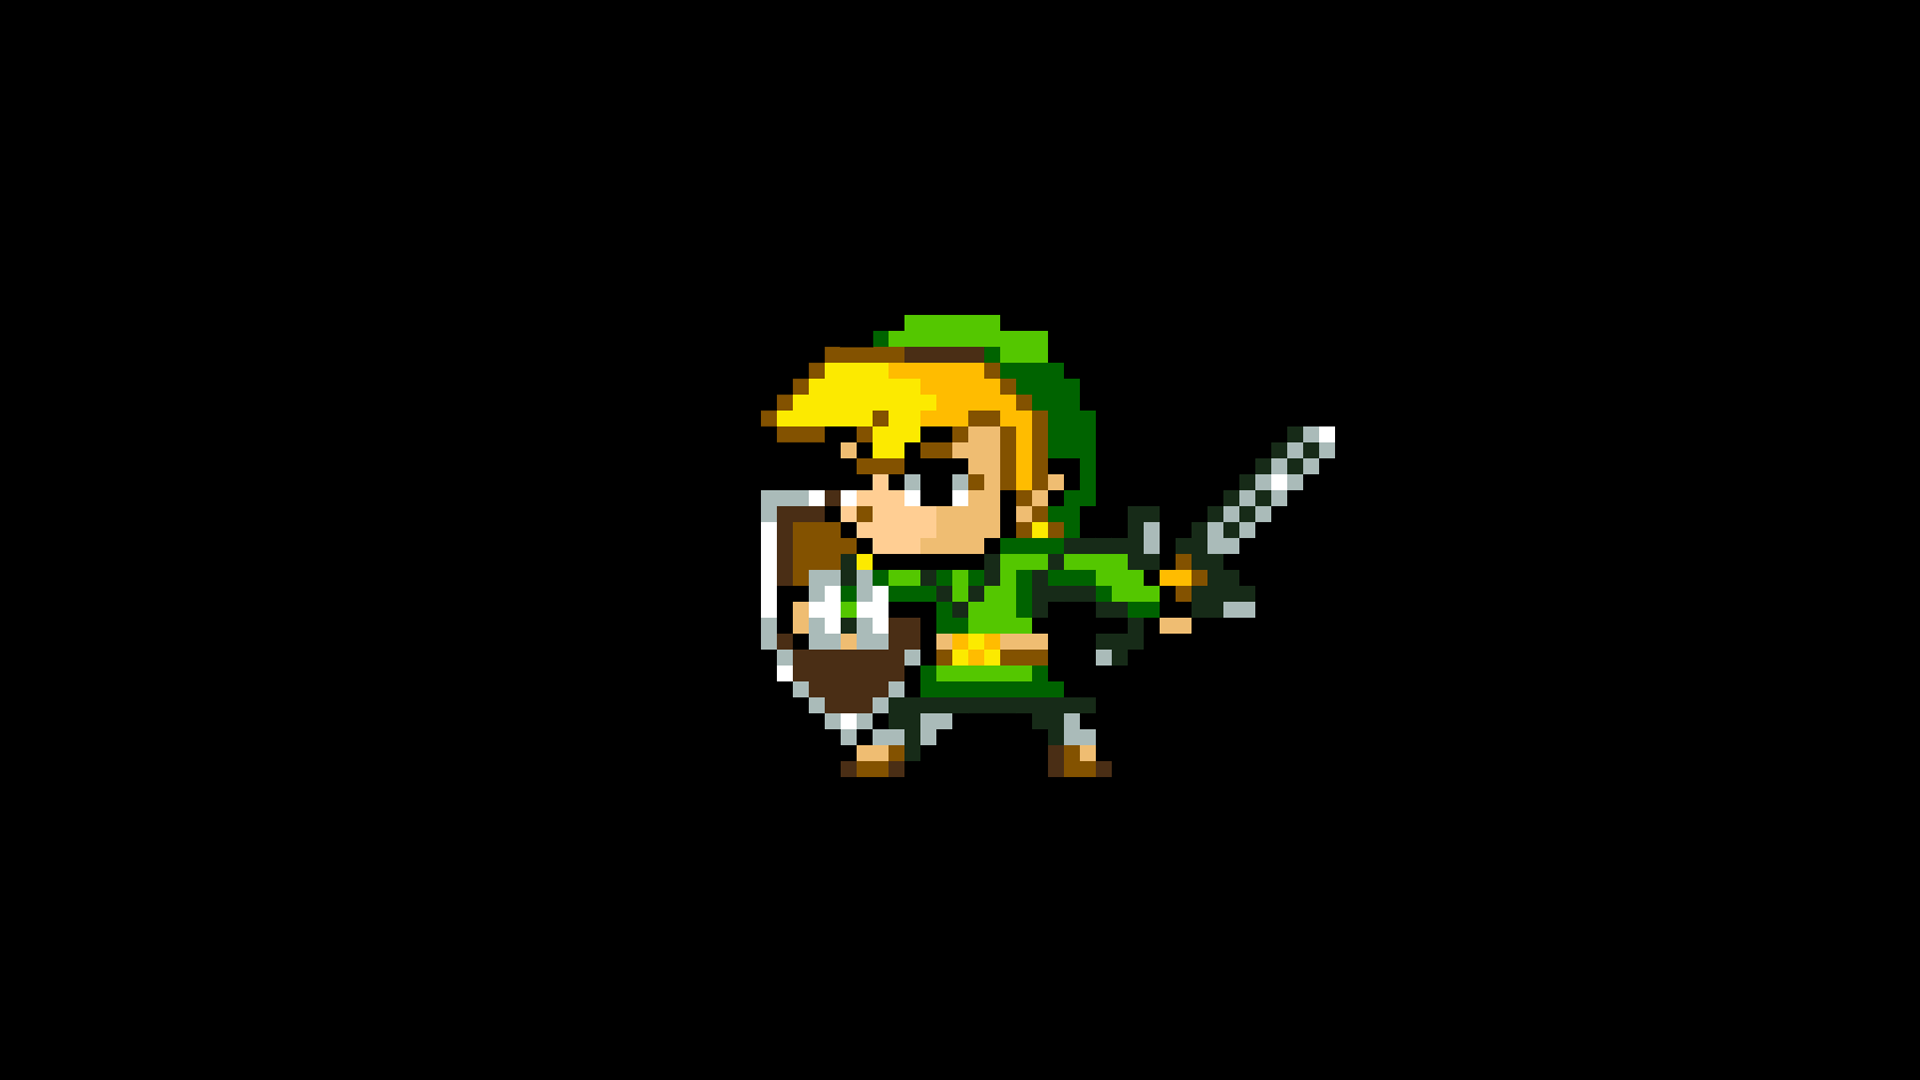 General 1920x1080 8-bit The Legend of Zelda Link minimalism pixels video games simple background black background retro games